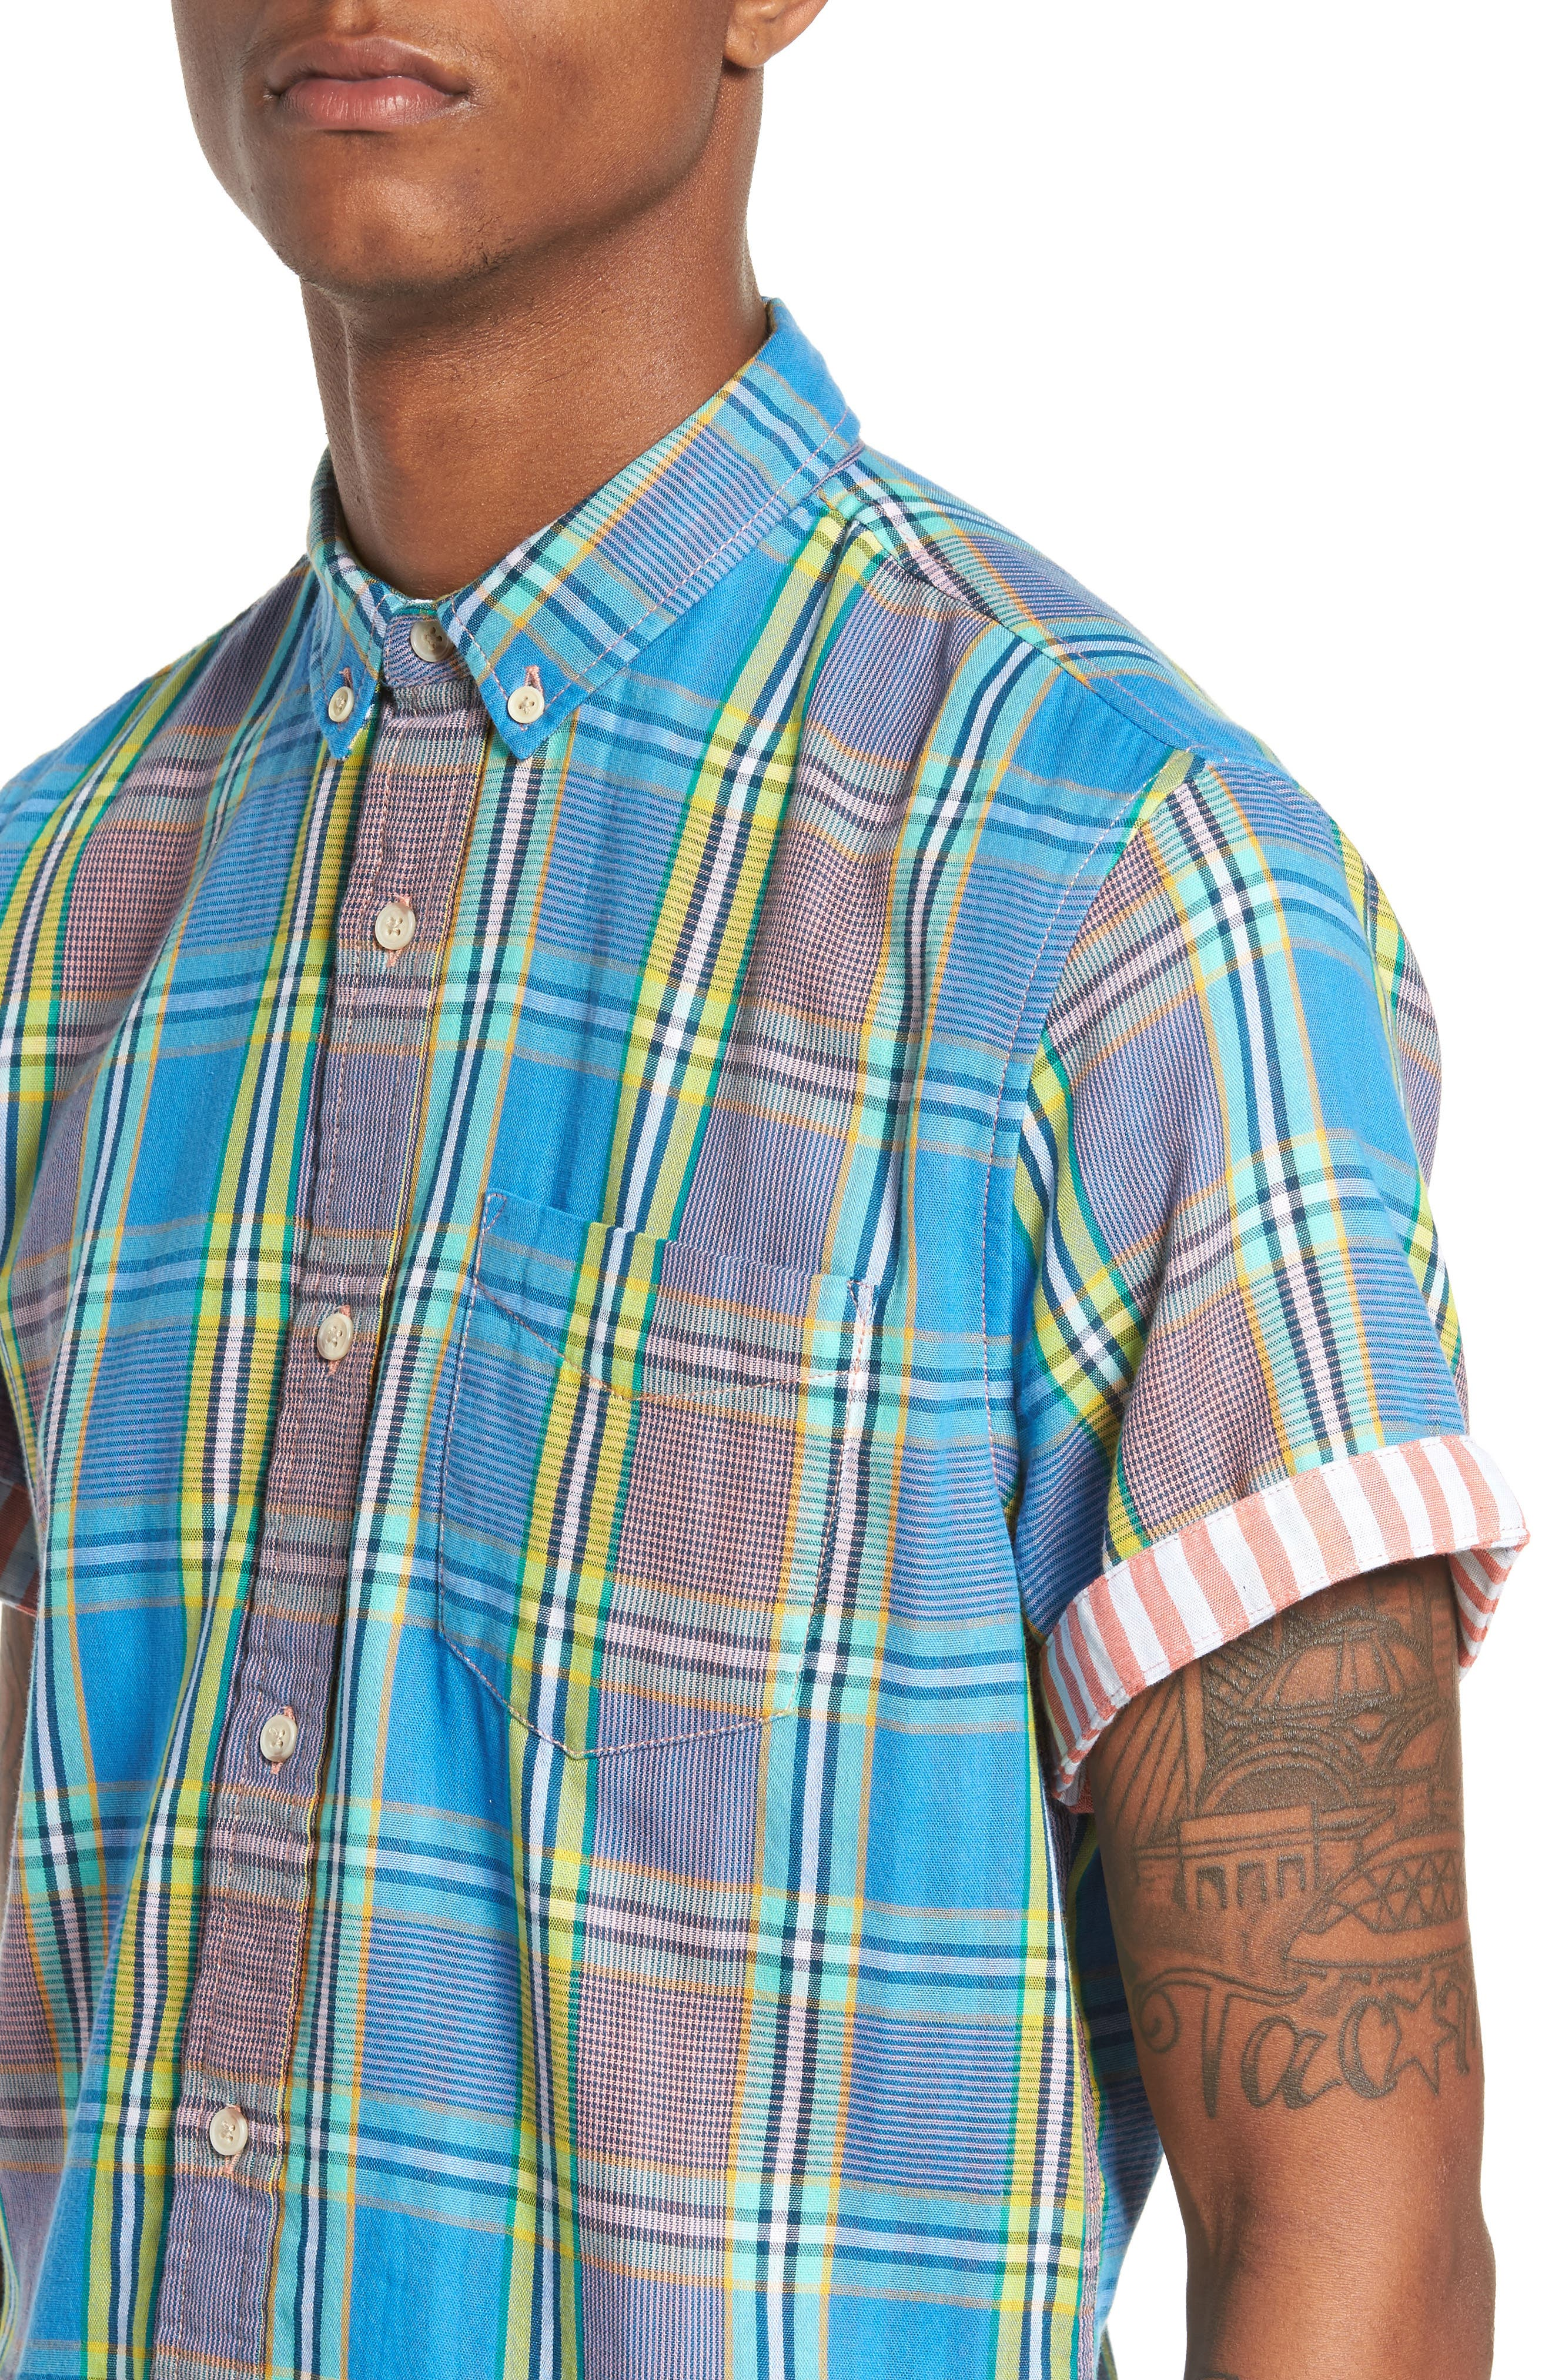 Short Sleeve Plaid Duofold Shirt,                             Alternate thumbnail 4, color,                             Blue Green Plaid Duo Fold